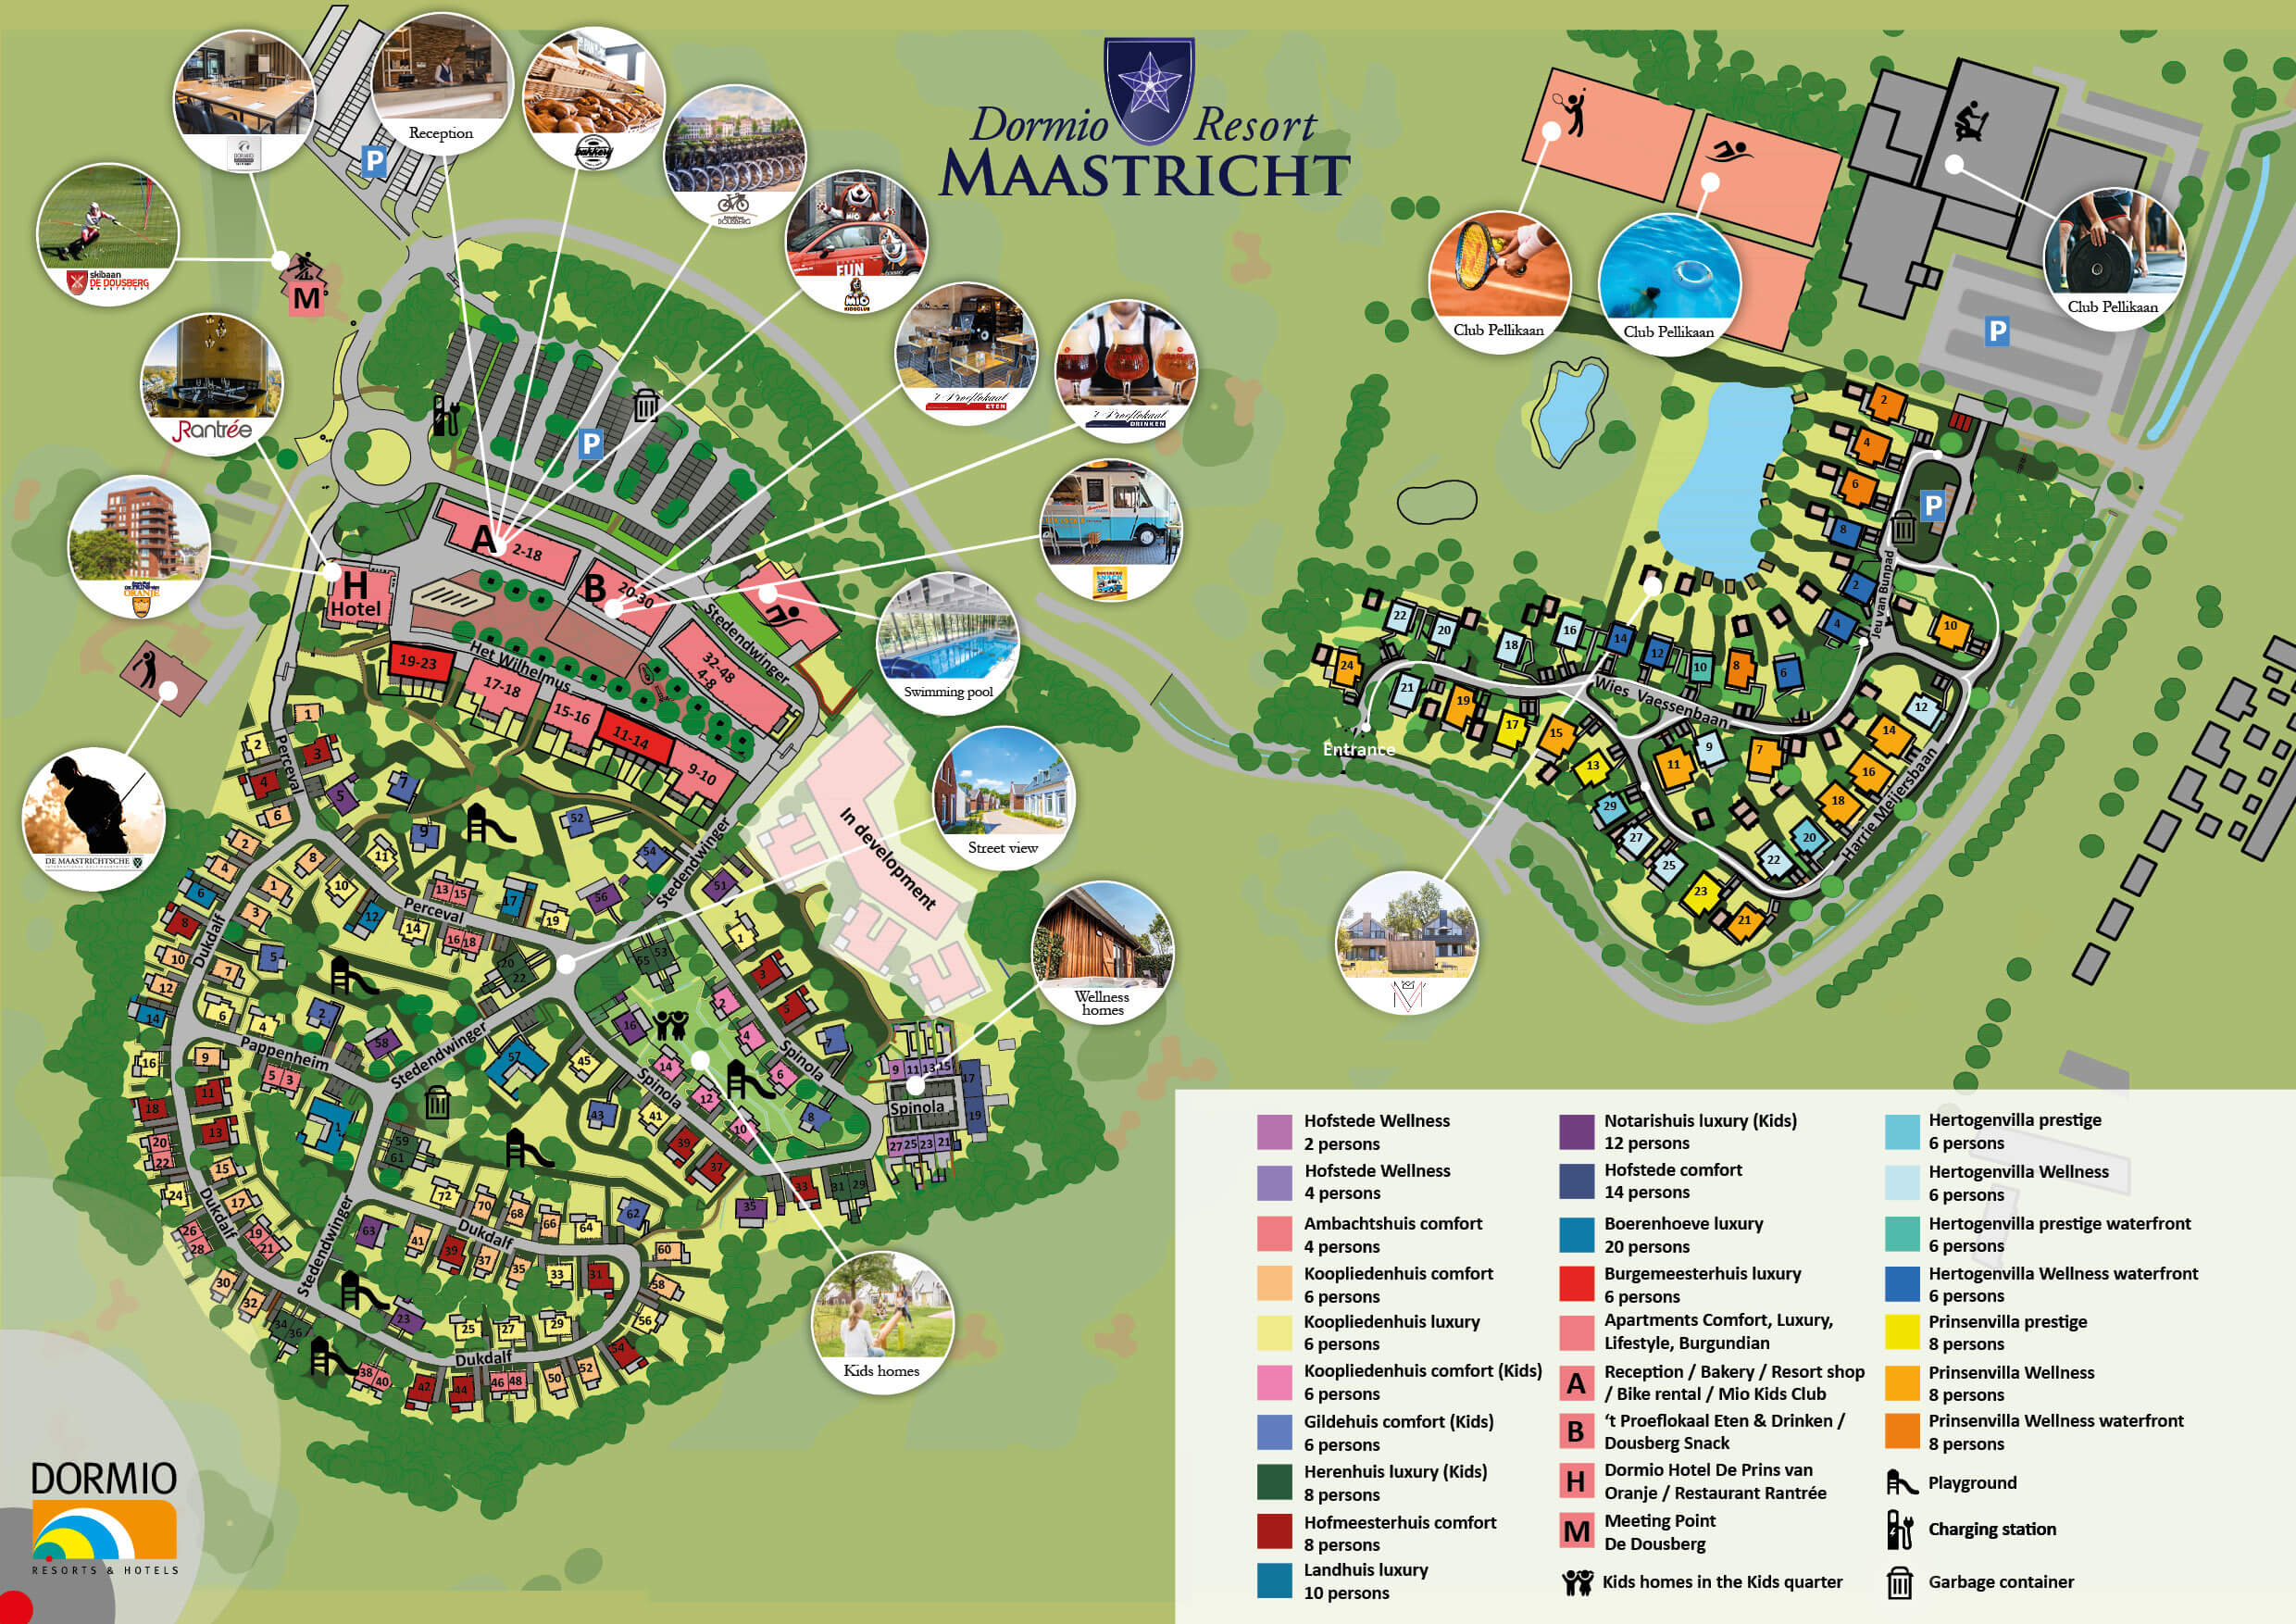 Map of Dormio Resort Maastricht